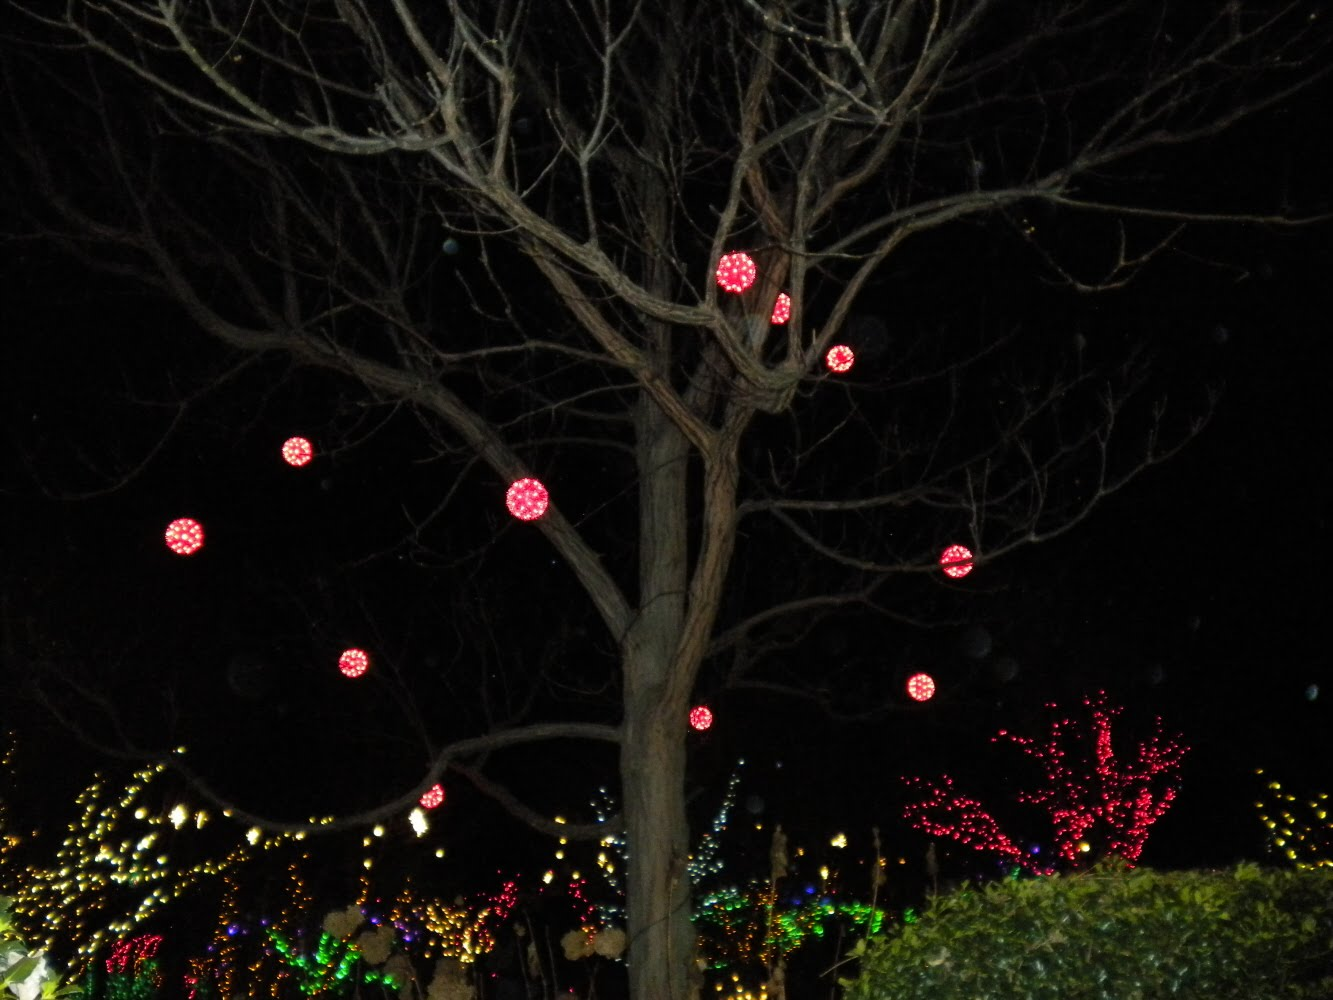 sherris jubilee daniel stowe botanical garden with christmas lights - Christmas Light Balls For Trees